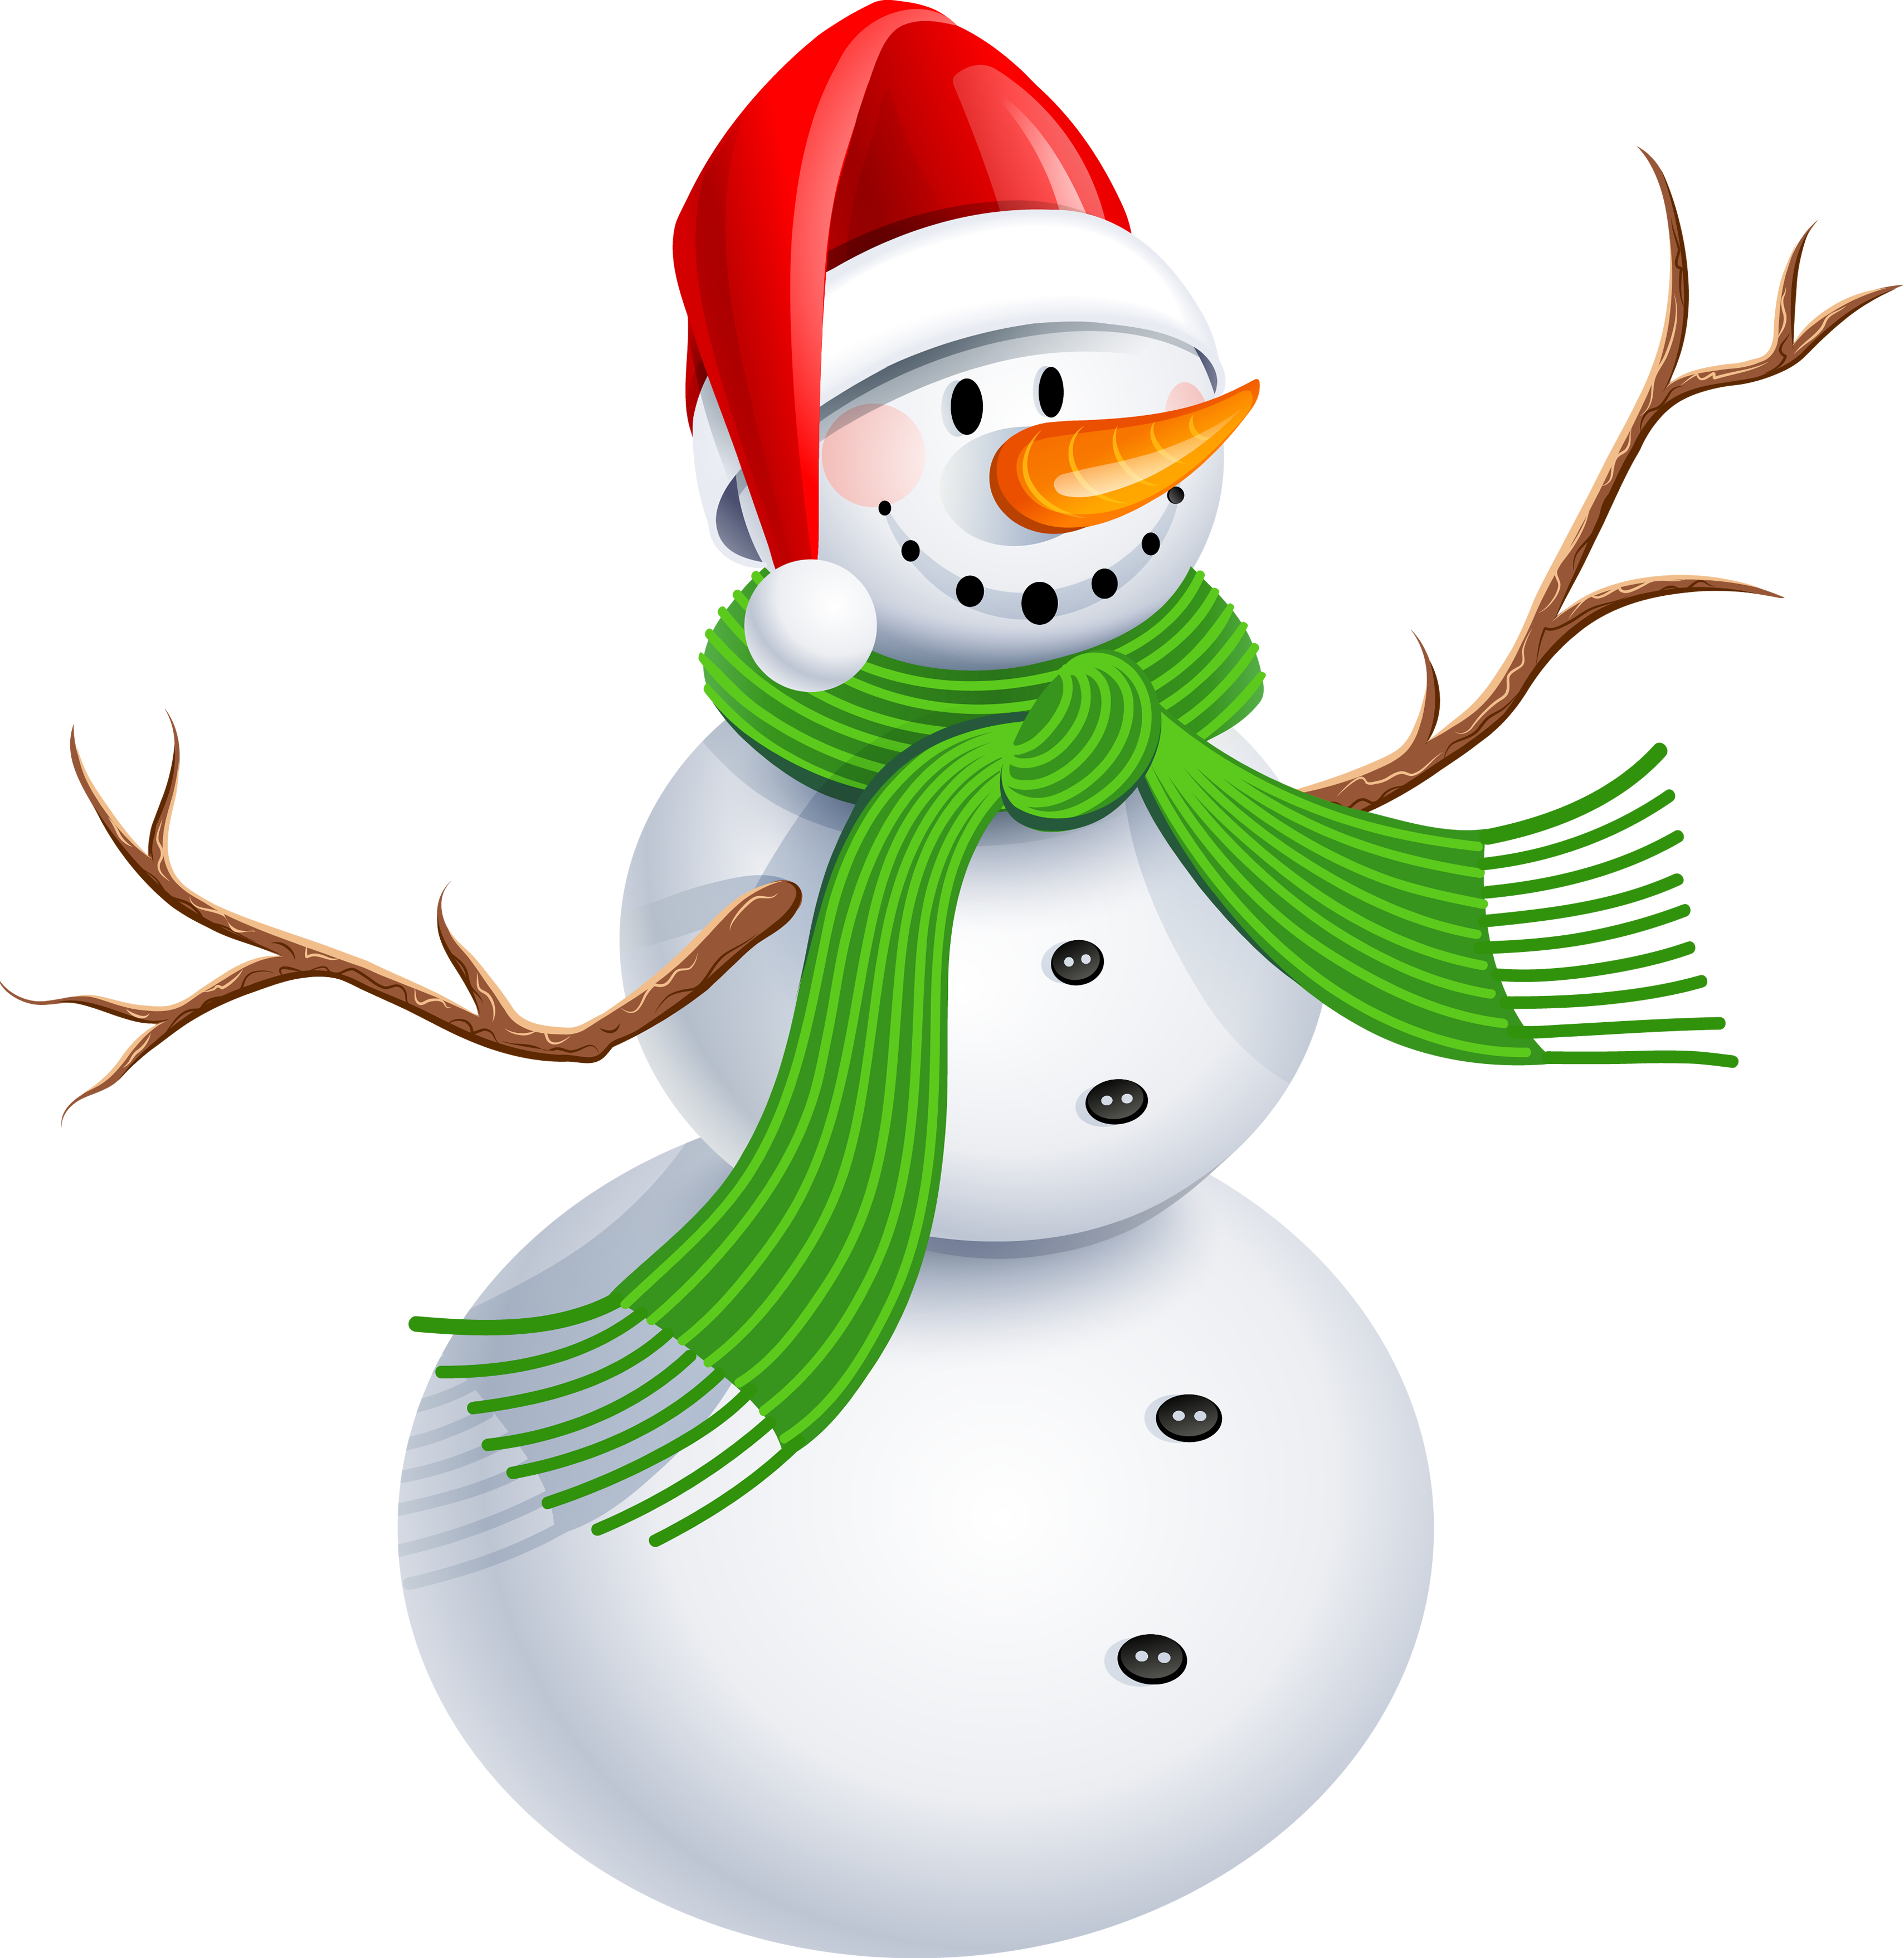 Winter clipart program, Winter program Transparent FREE for.